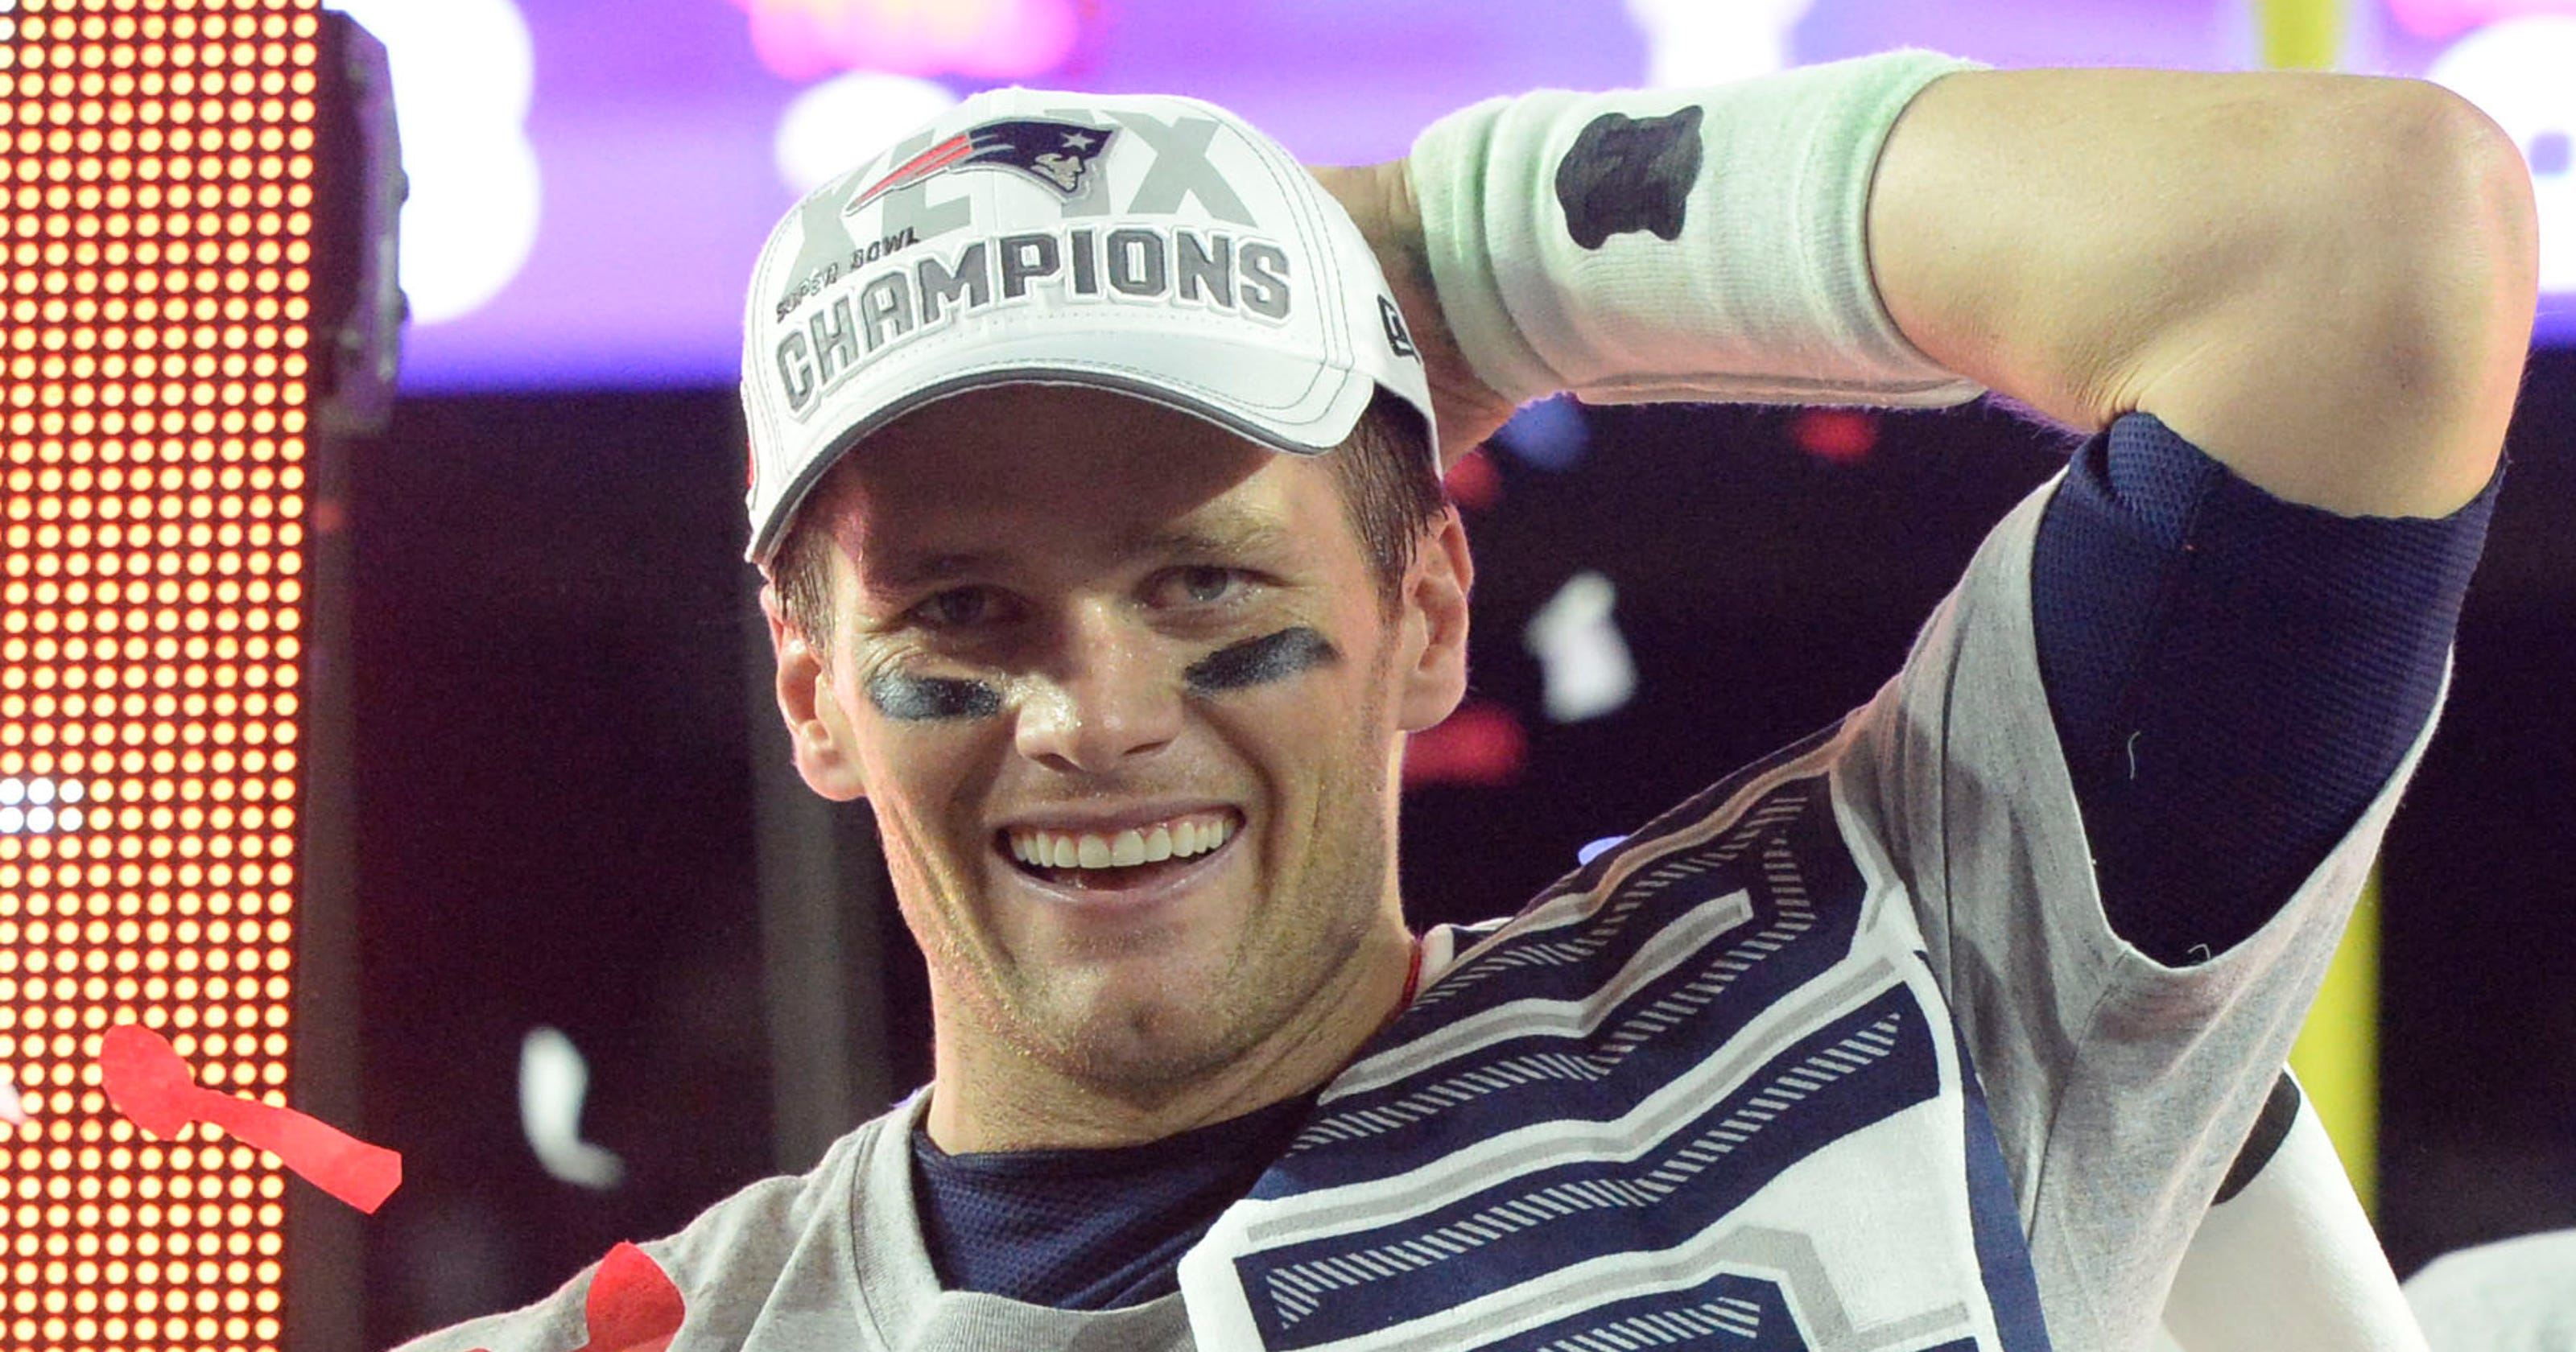 d21ffdadee8 The 50 greatest players in Super Bowl history